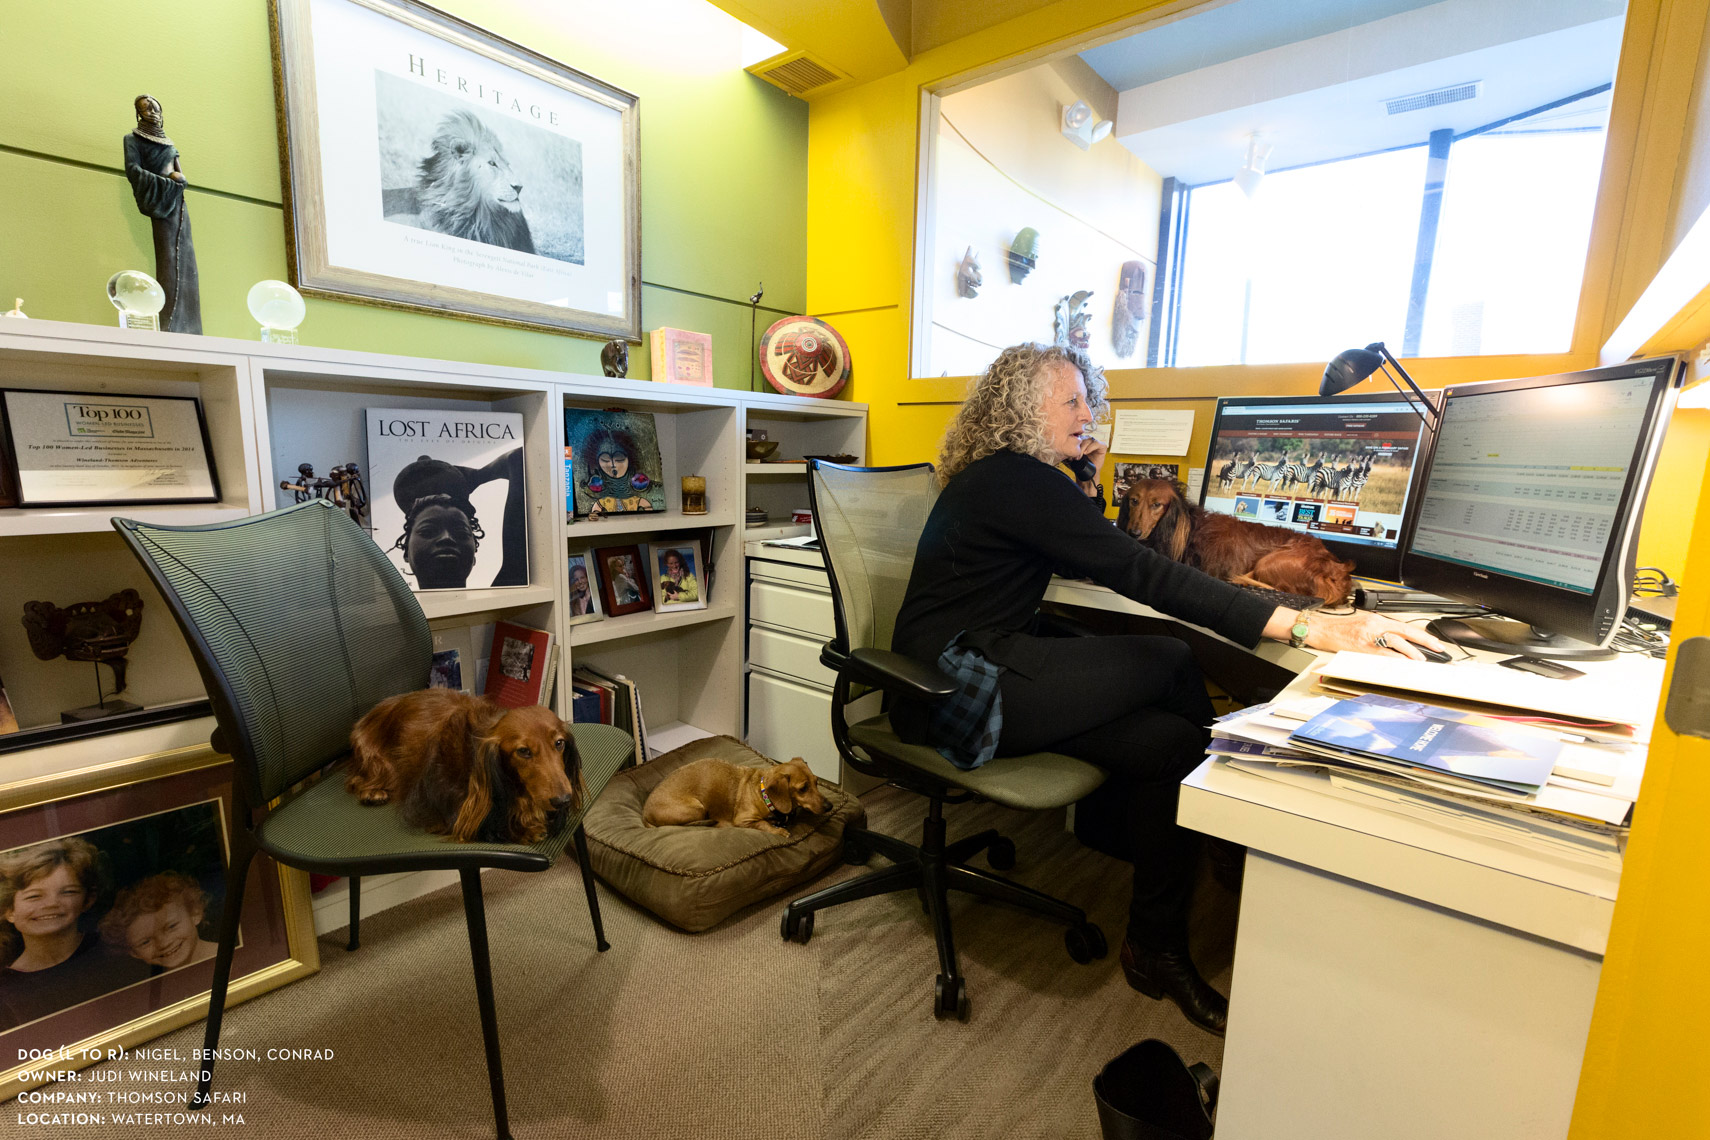 Dogs at work: Judi Wineland surrounded by her dogs at Thomson Safari